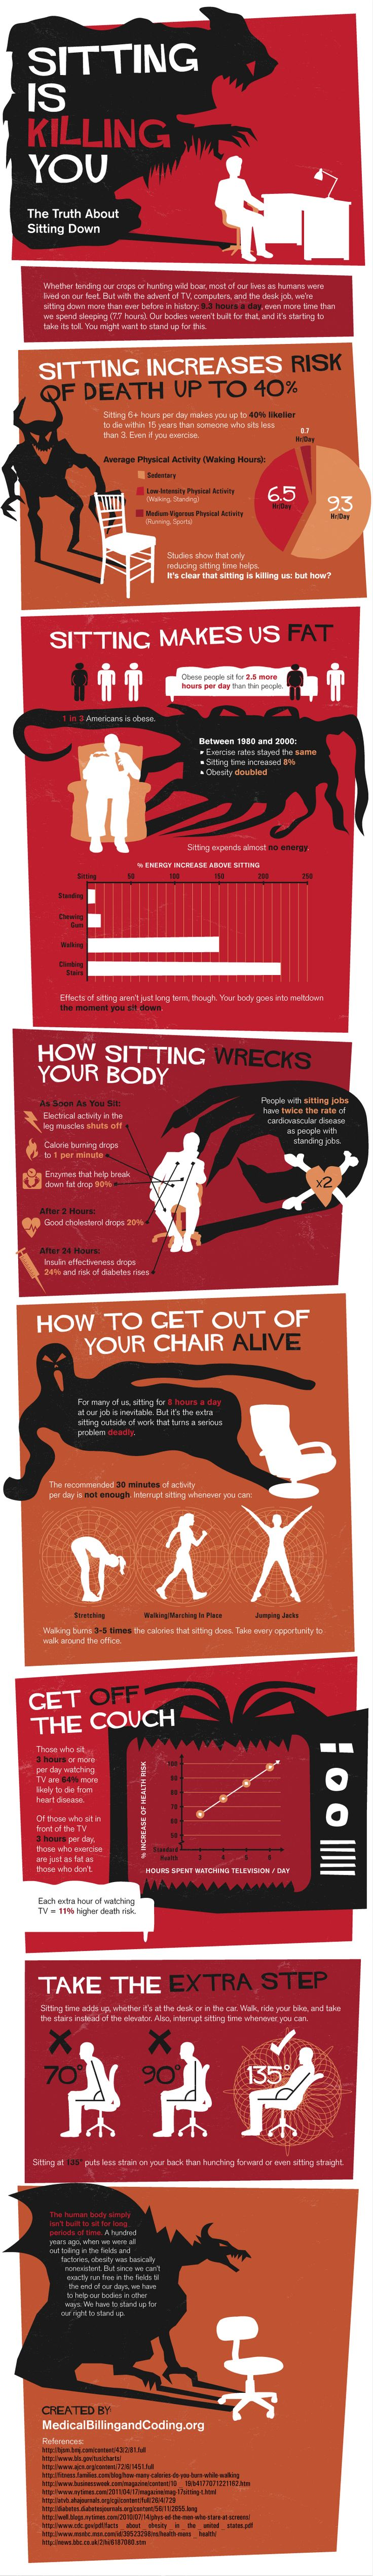 Did you know: Sitting is Killing you, the more you sit greater is the Risk http://bit.ly/sv59D7